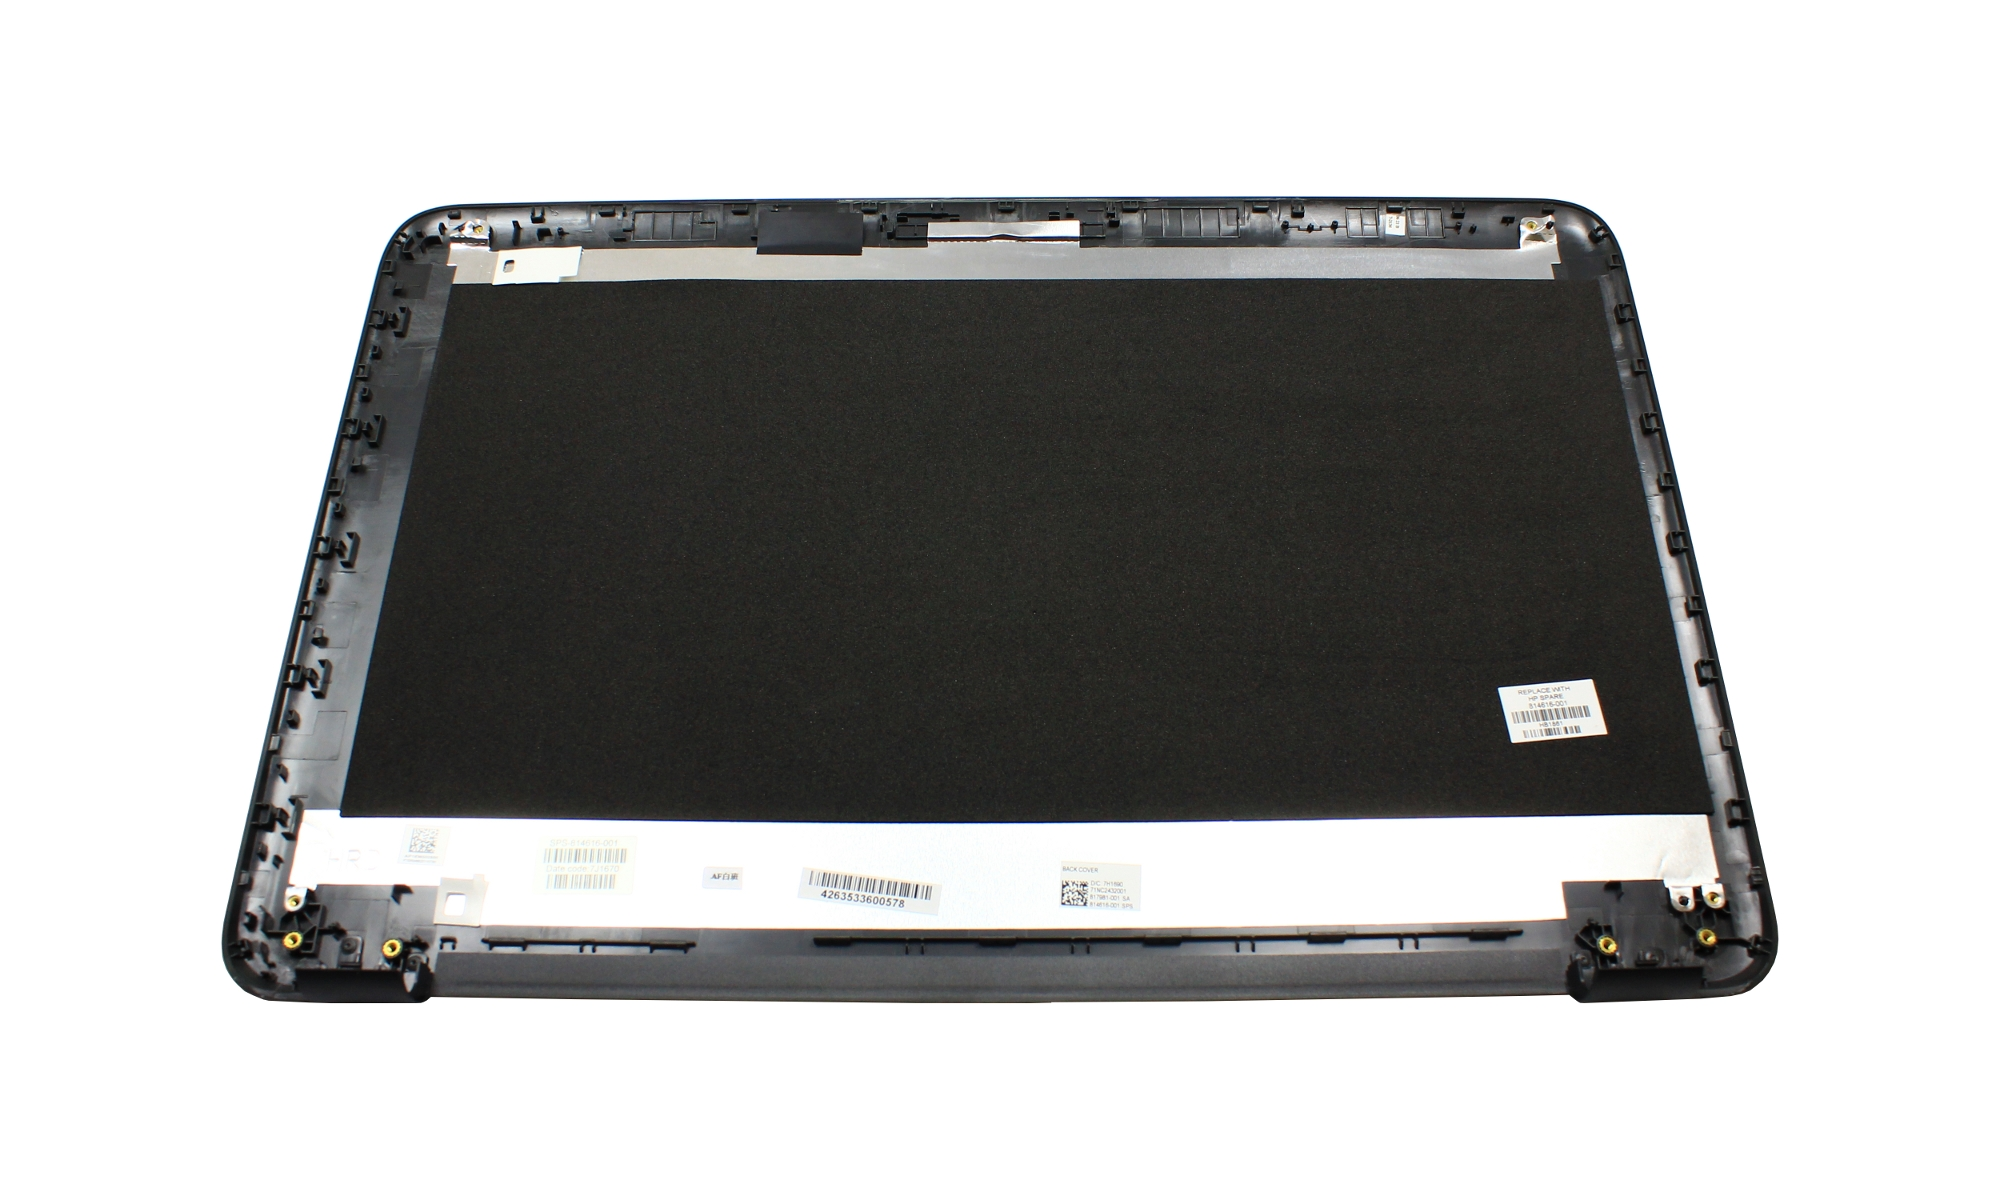 Set capac display, rama fata si balamale HP 256 G4